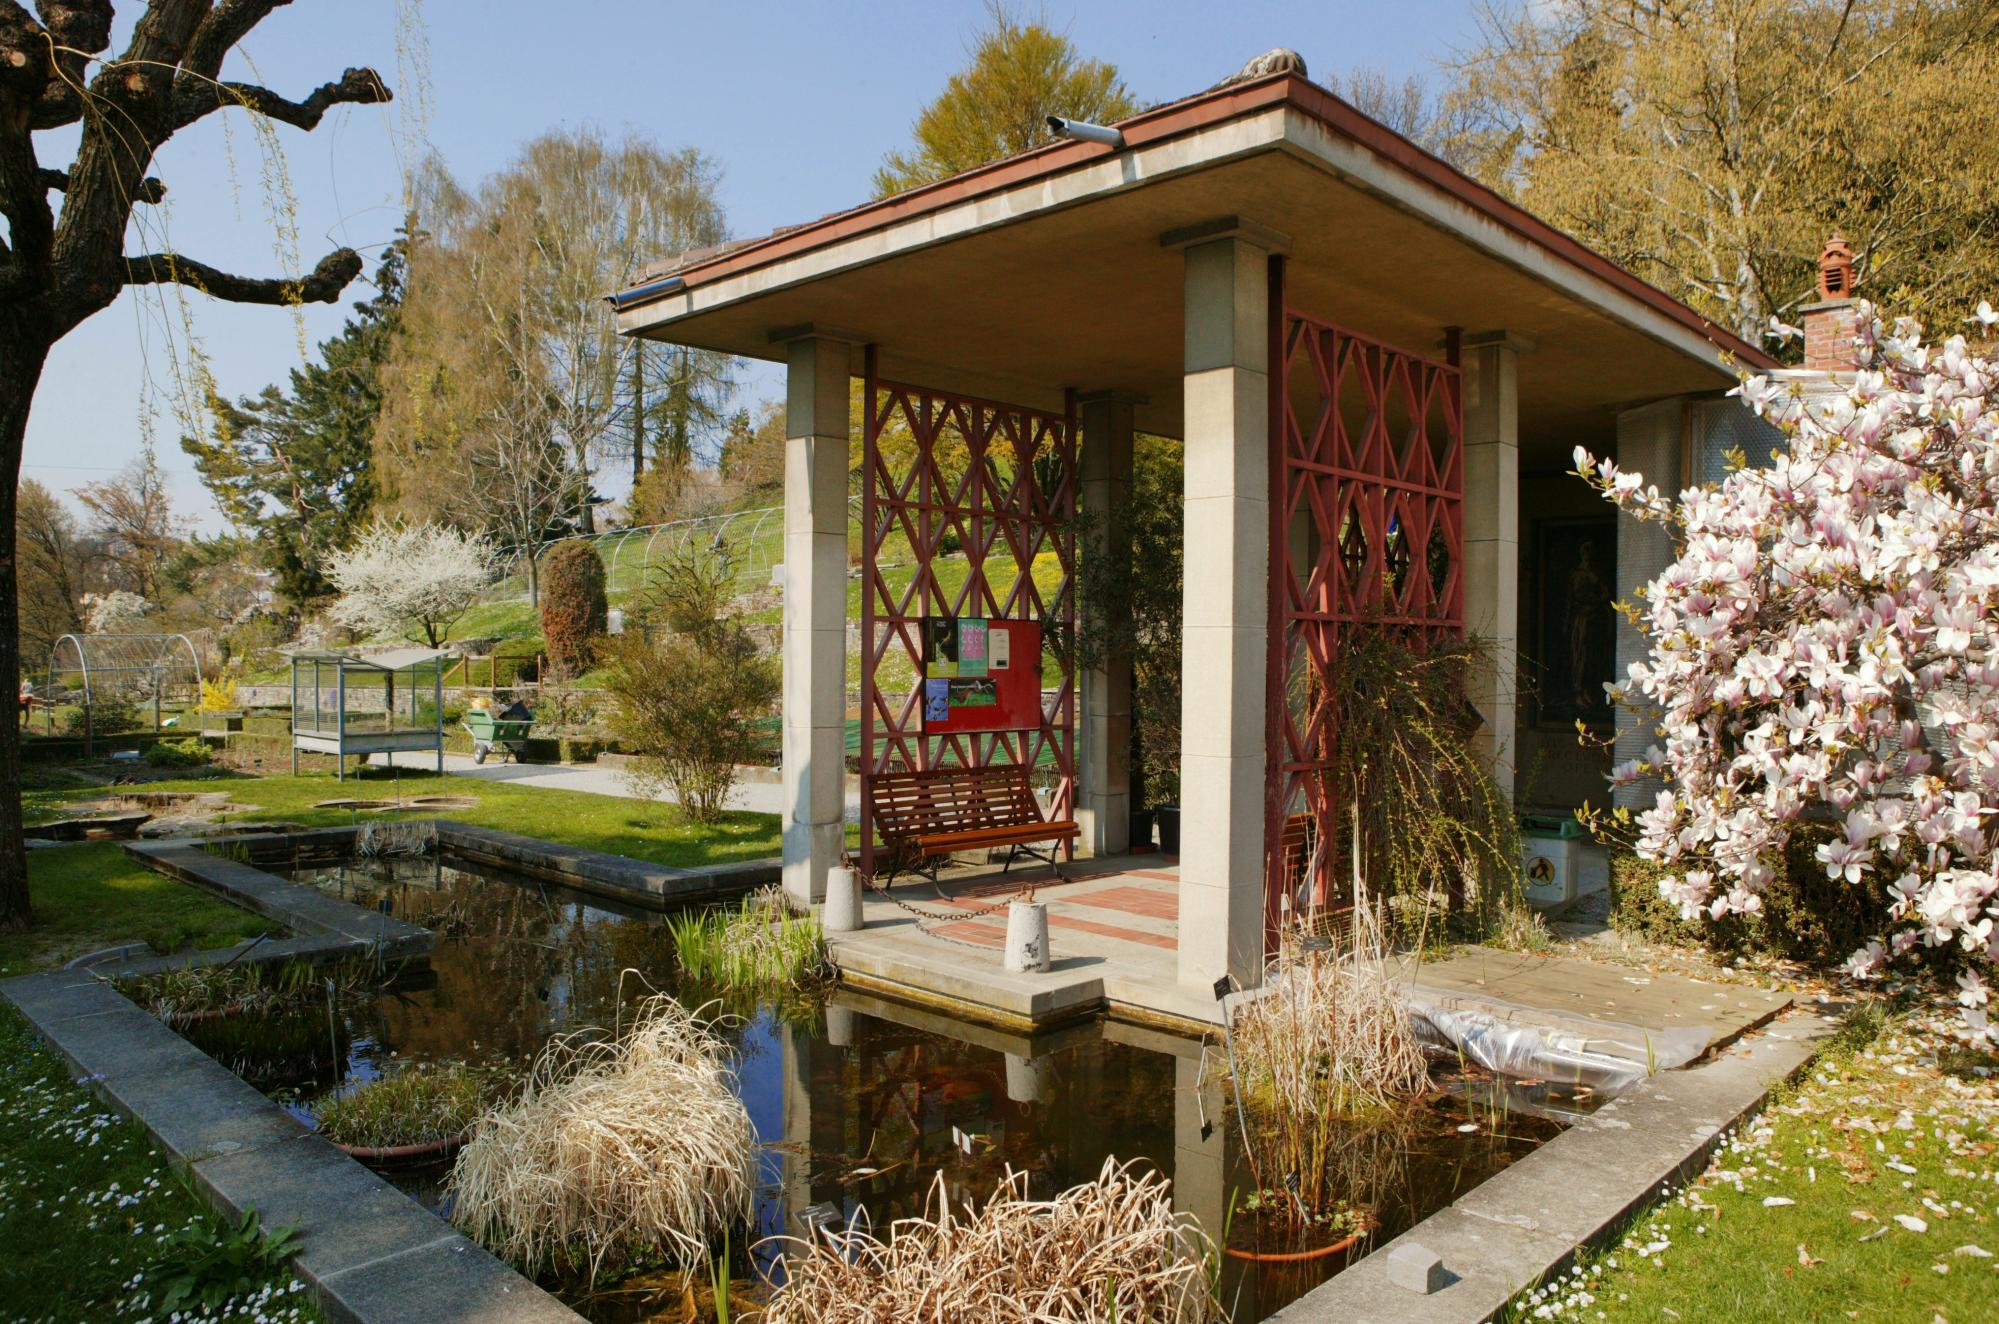 Lausanne botanical museum and garden